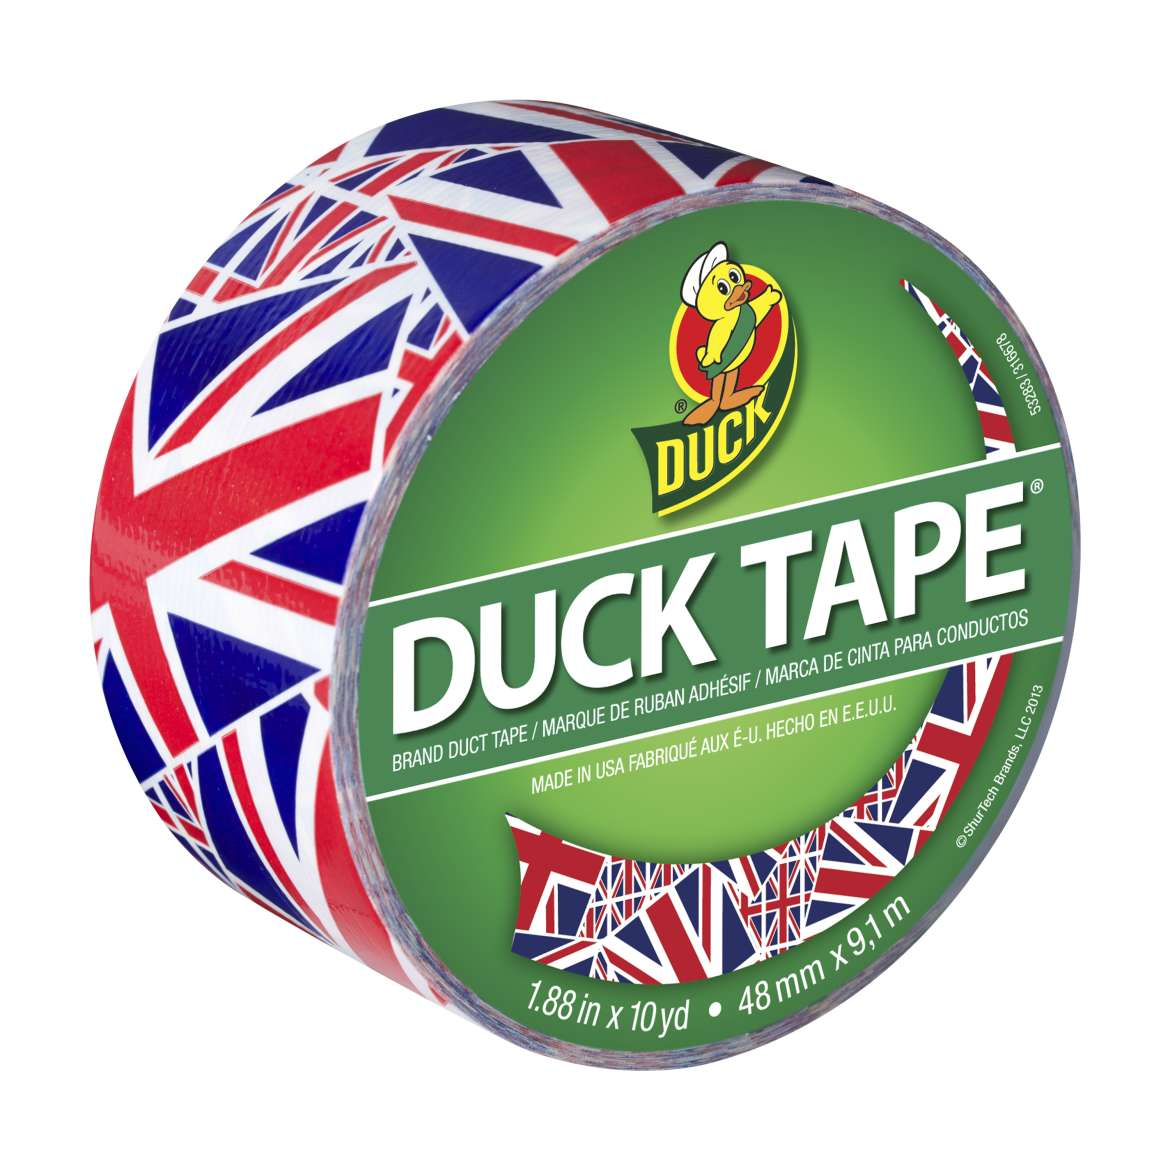 Duck Brand Duct Tape, 1.88 in. x 10 yds., Union Jack